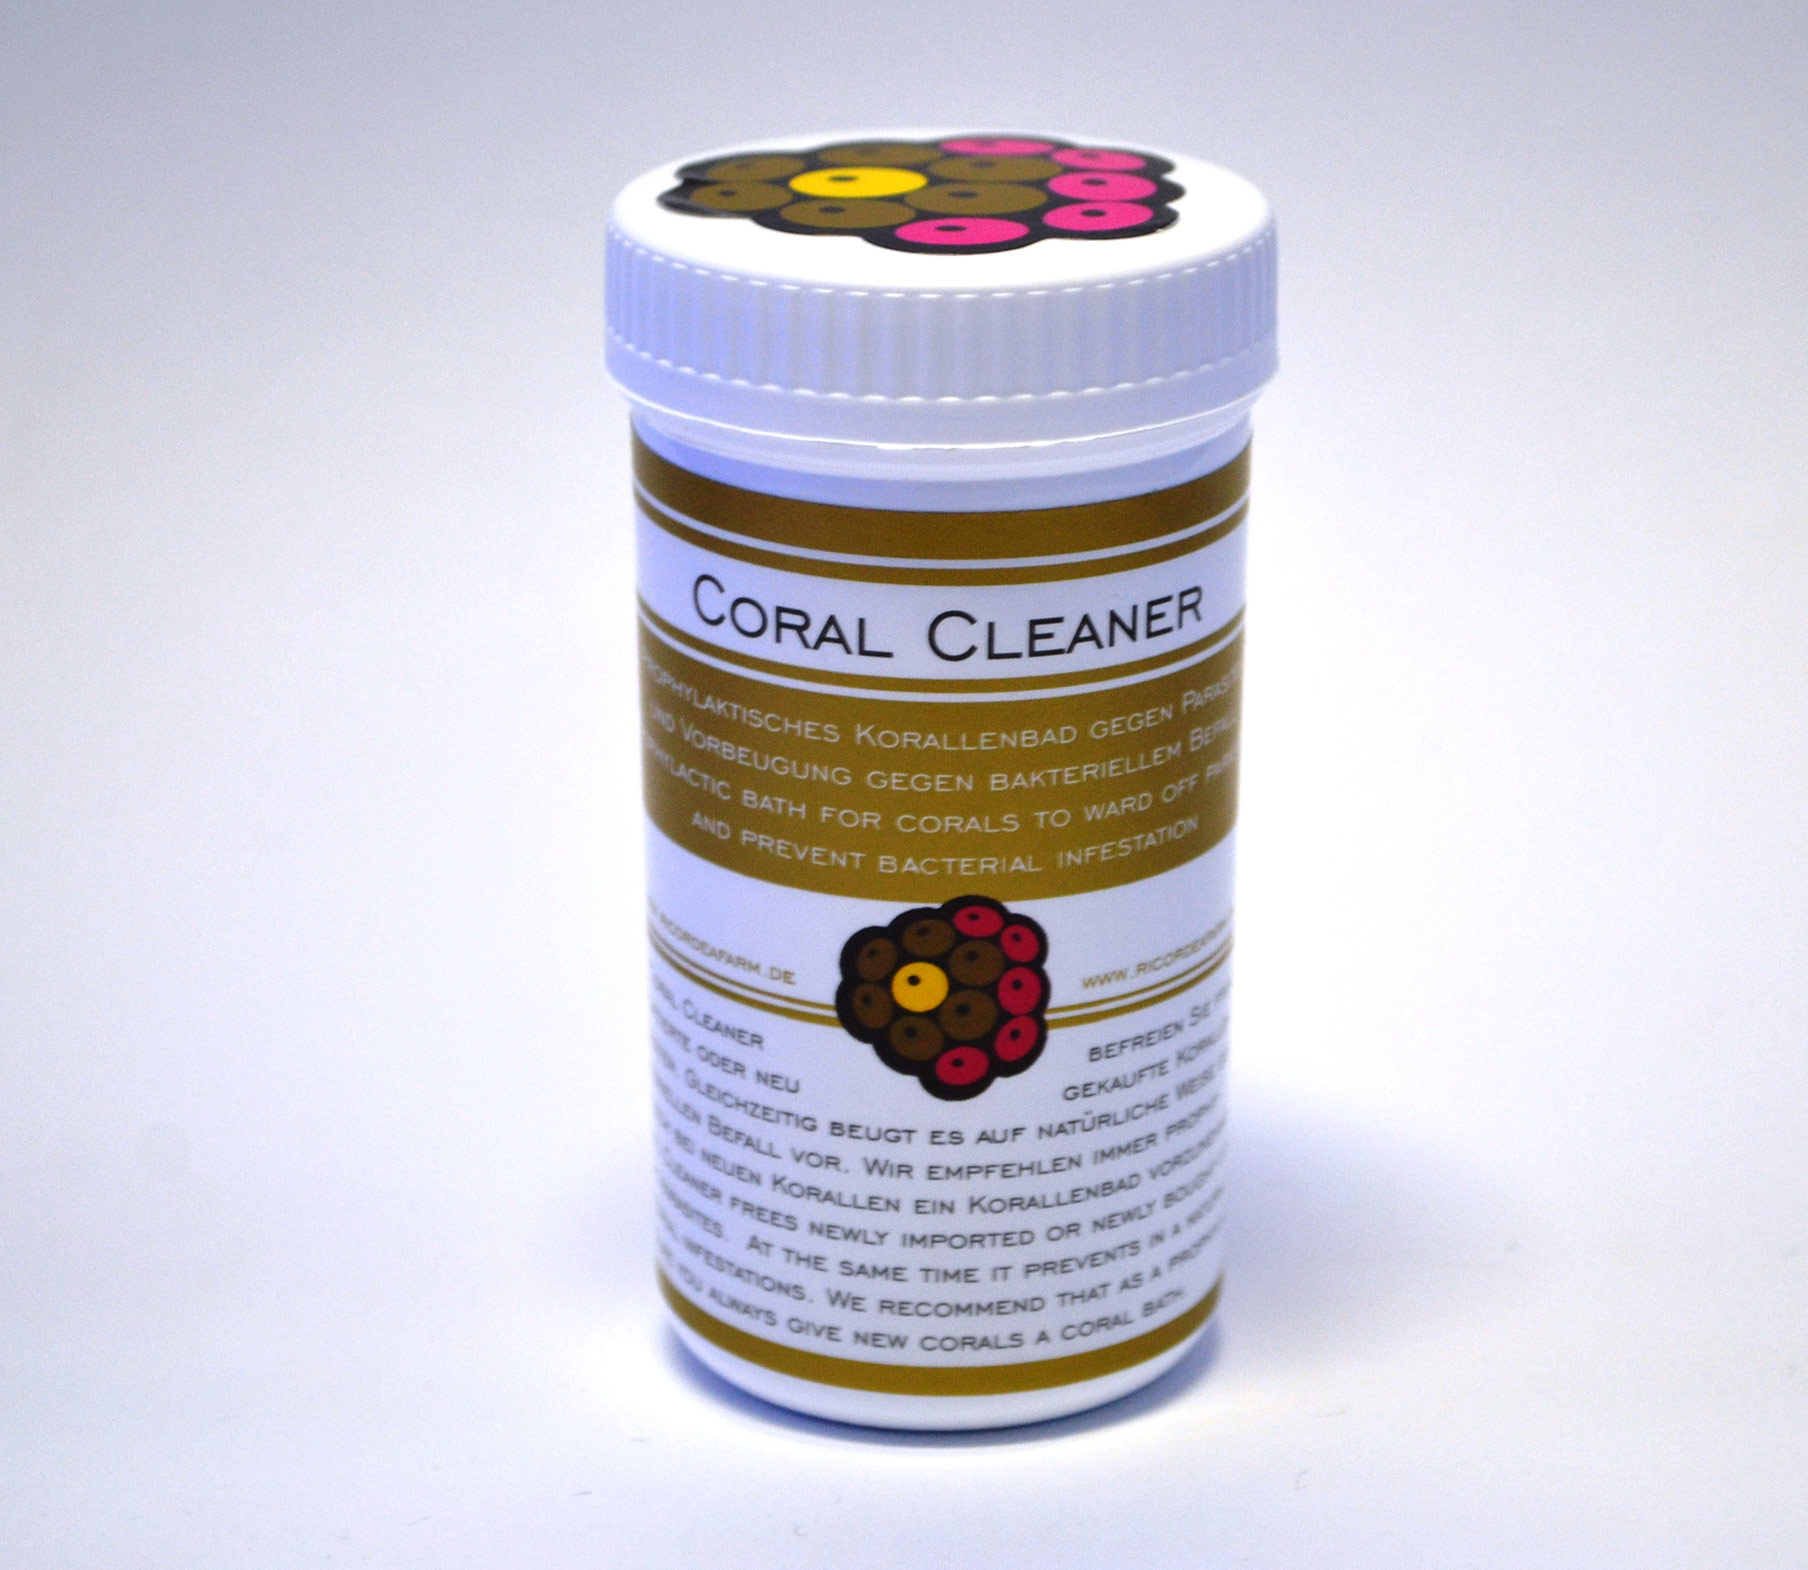 Coral Cleaner